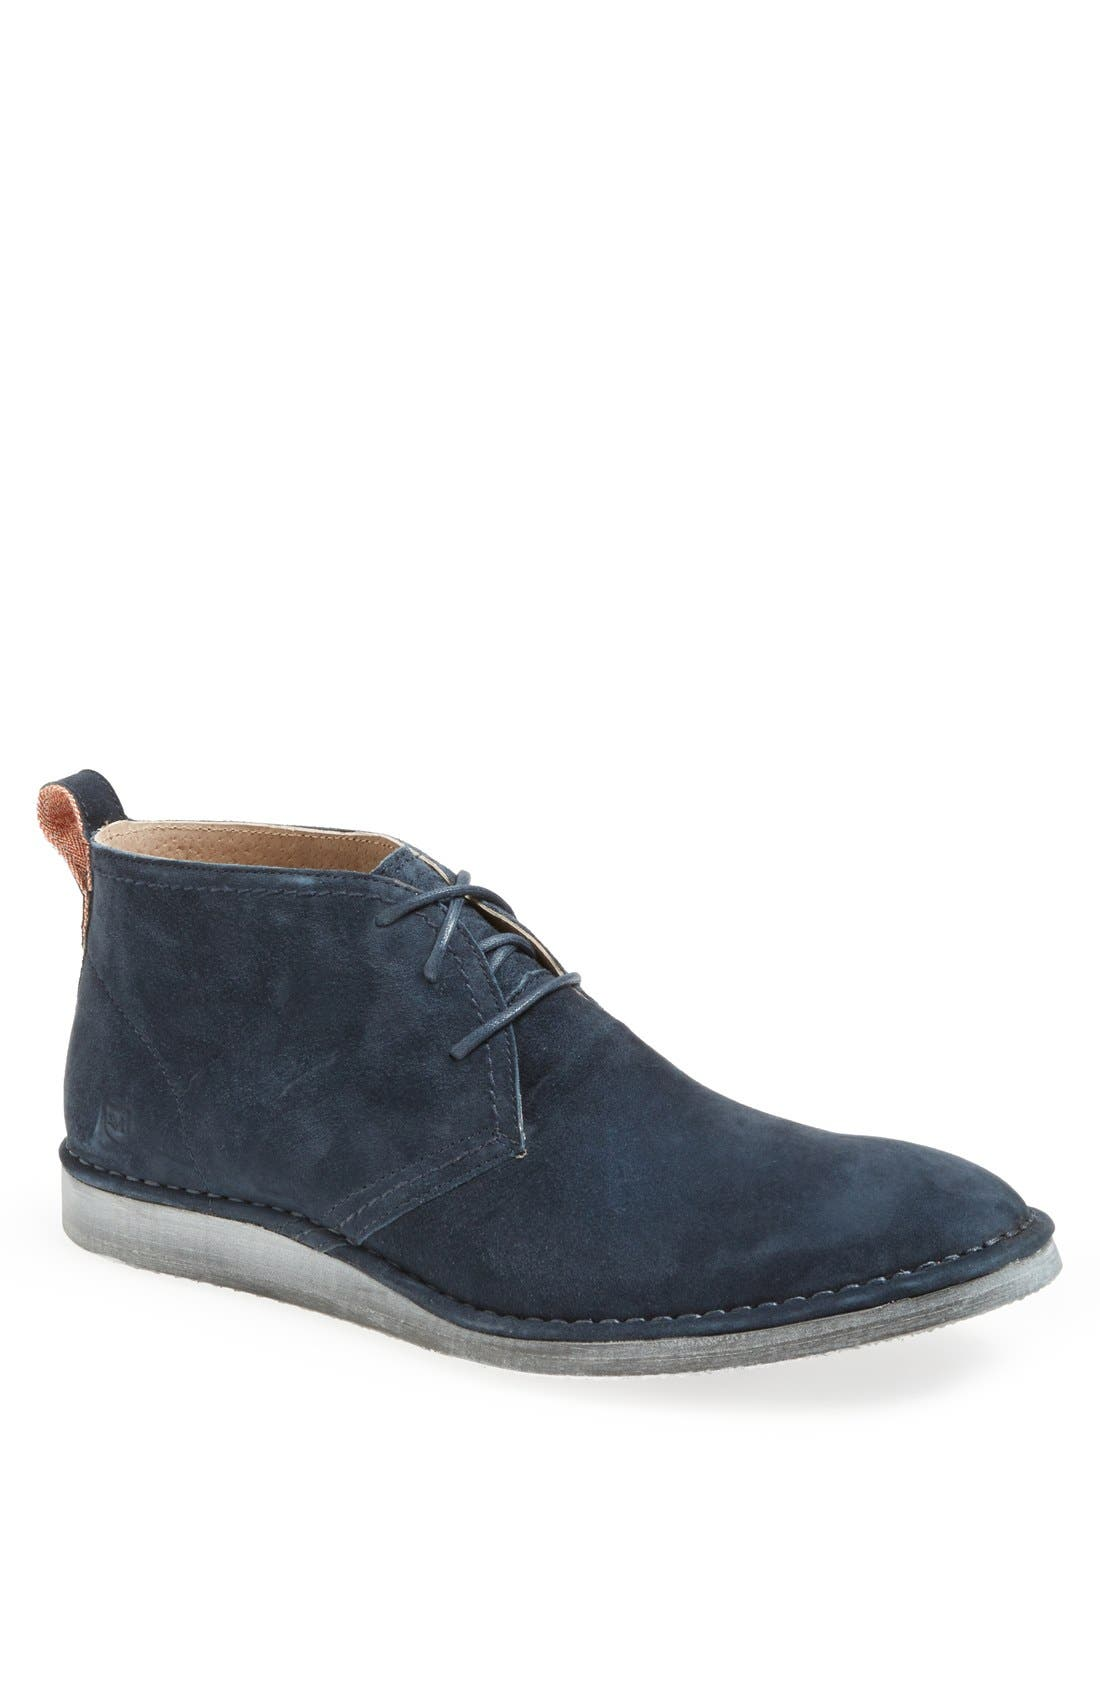 Alternate Image 1 Selected - Andrew Marc 'Parkchester' Chukka Boot (Men)